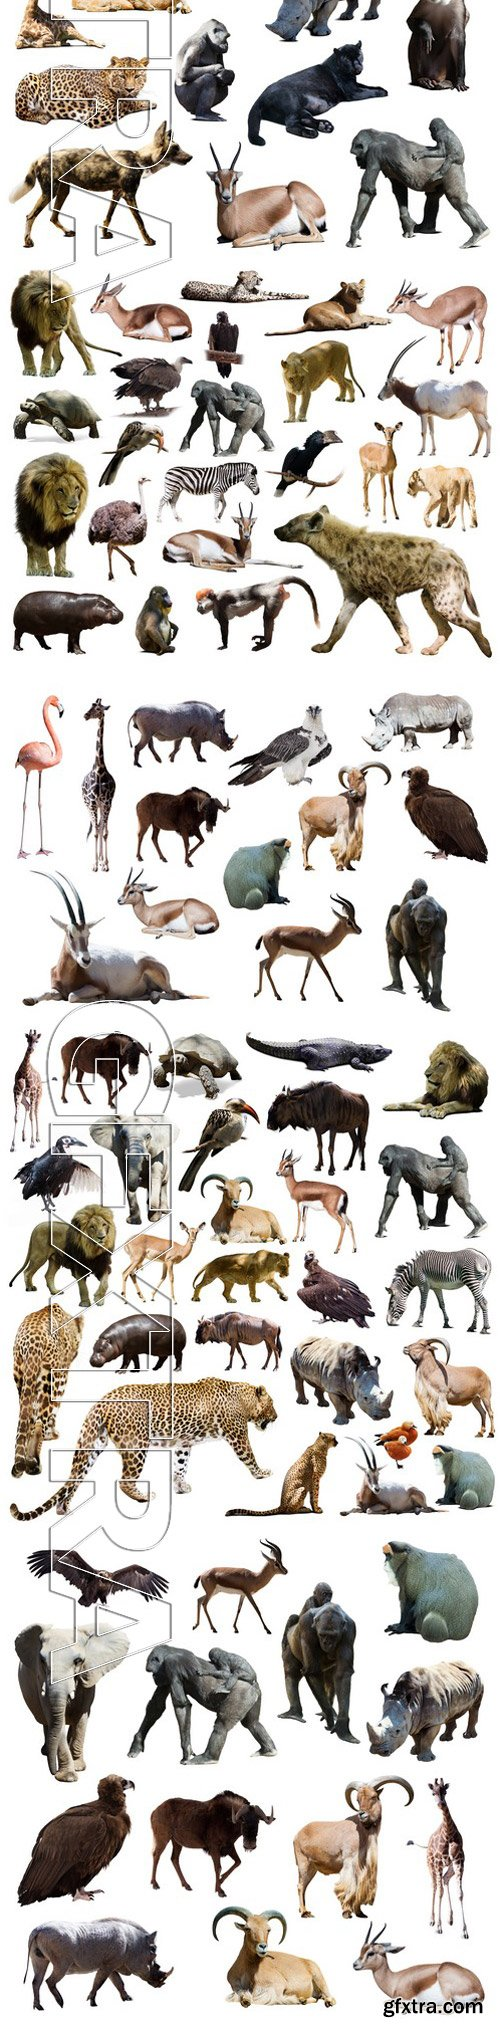 Stock Photos - Different African Animals 9